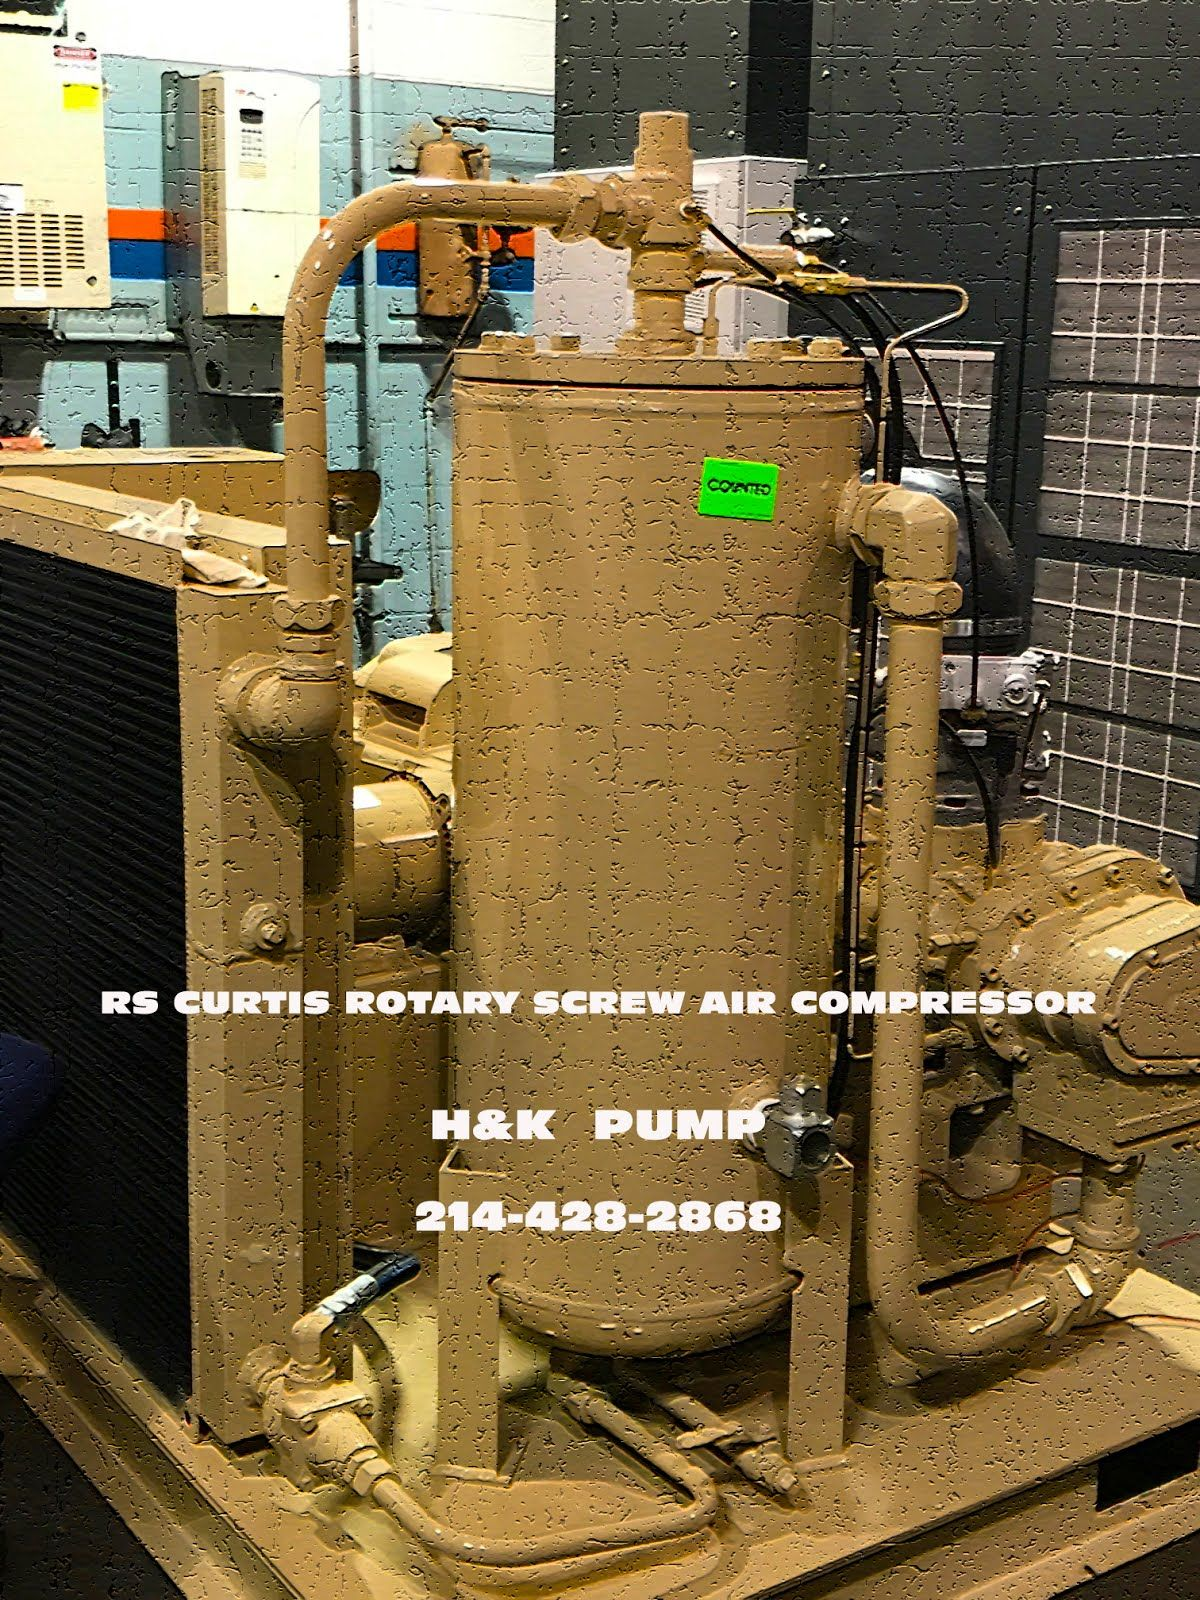 RS rotary screw compressor, air compressors, rotary screw